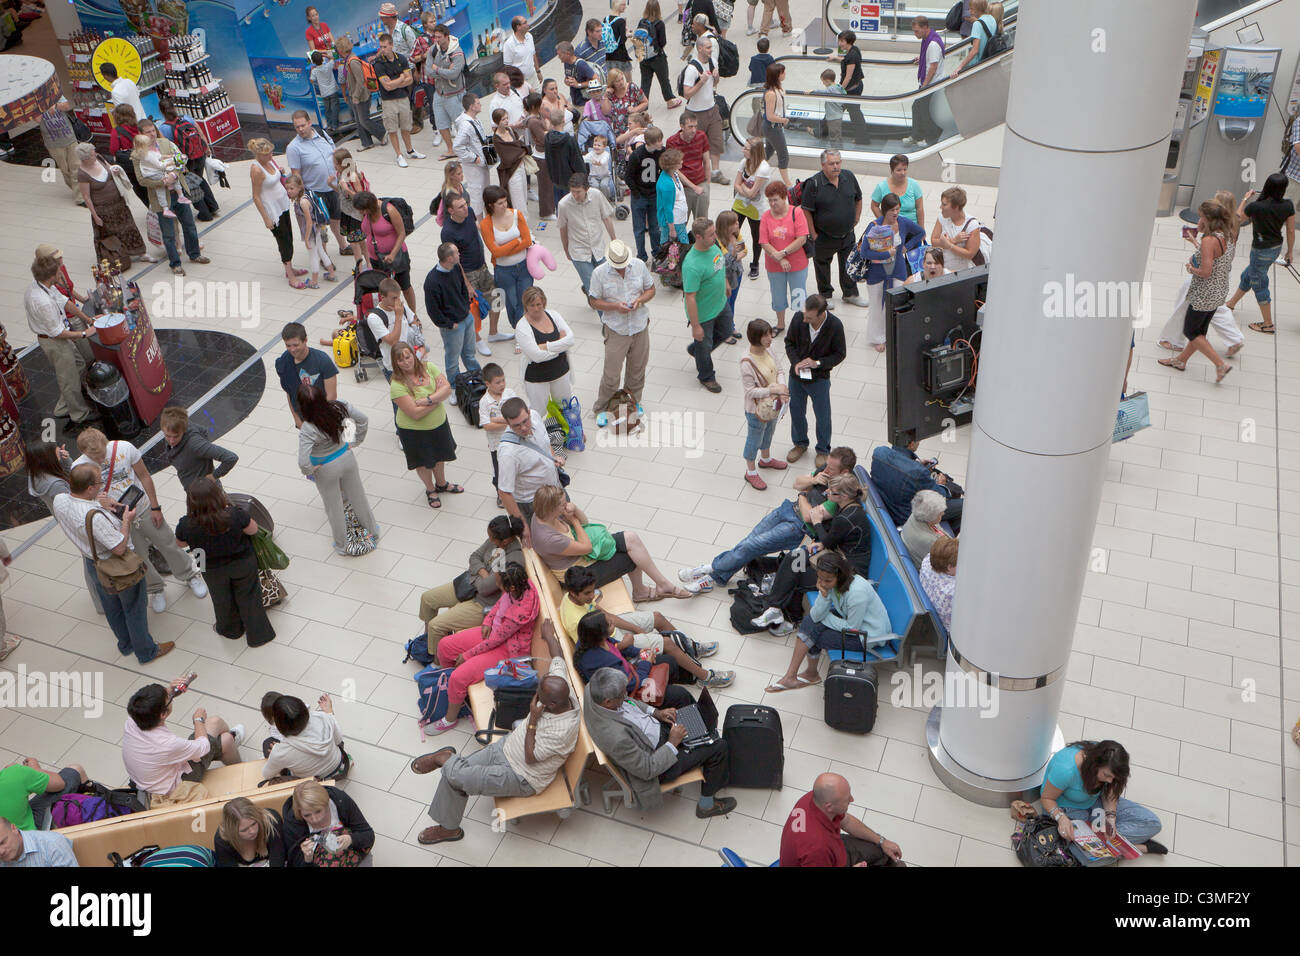 Passengers waiting for flight information at the departure lounge of the south terminal at Gatwick Airport, England - Stock Image